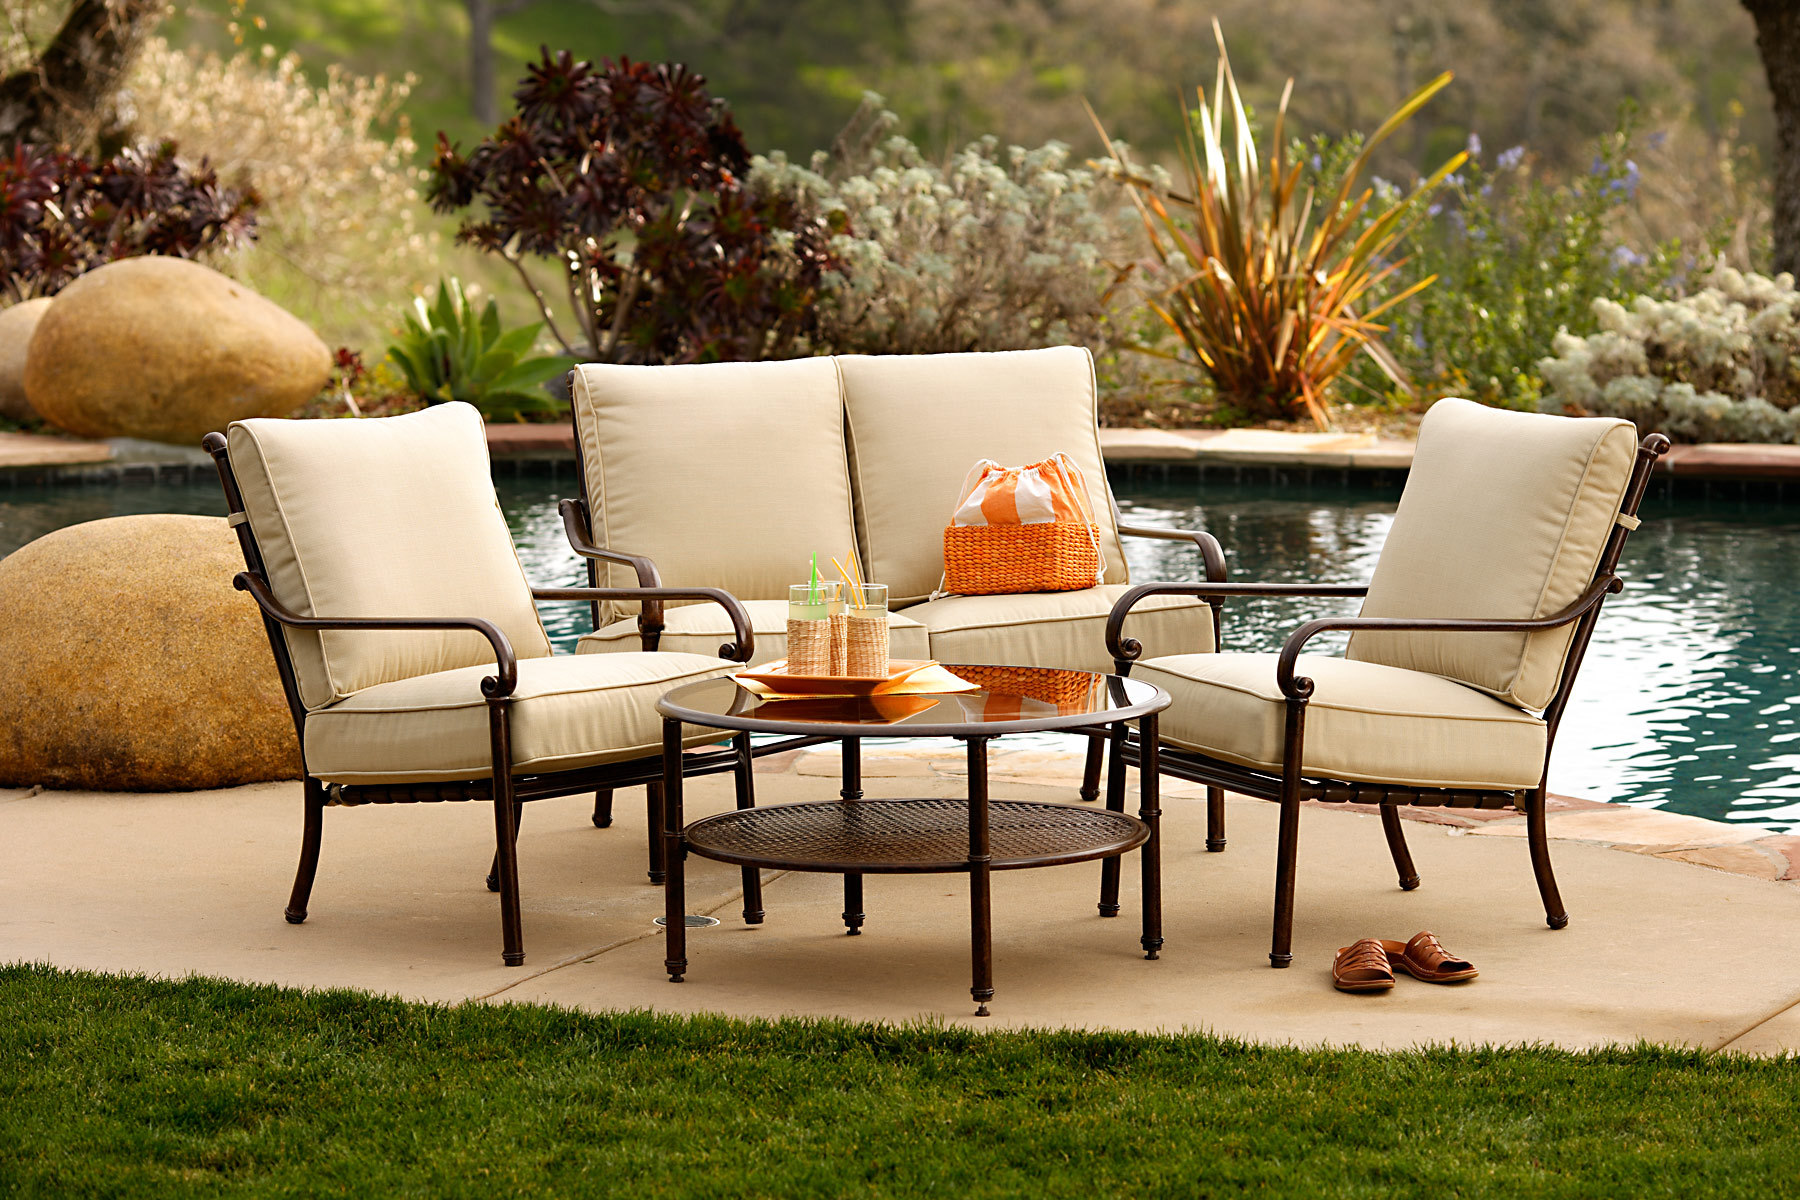 Small patio furniture eva furniture for Outdoor porch furniture